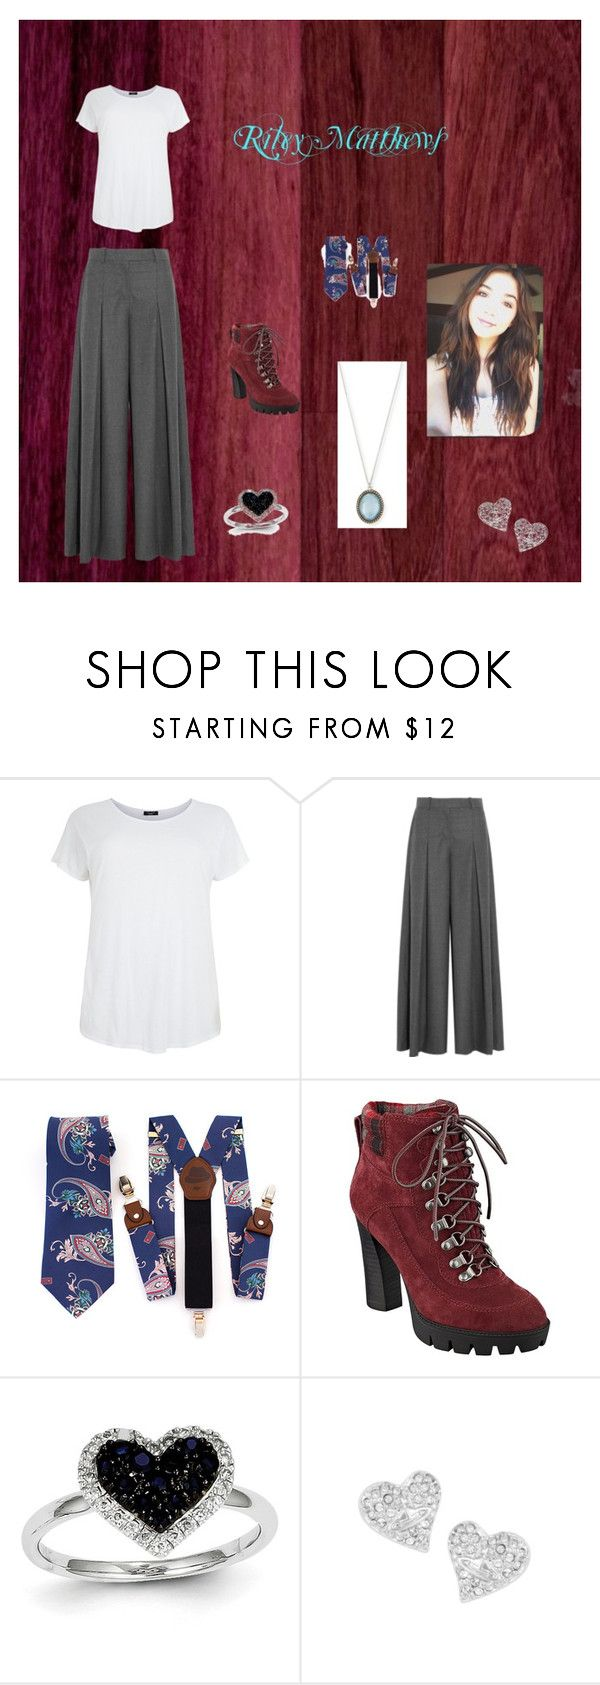 """""""Riley Matthews"""" by fashiondivabmf ❤ liked on Polyvore featuring J.Crew, Nine West, Kevin Jewelers, Vivienne Westwood, Armenta, women's clothing, women, female, woman and misses"""